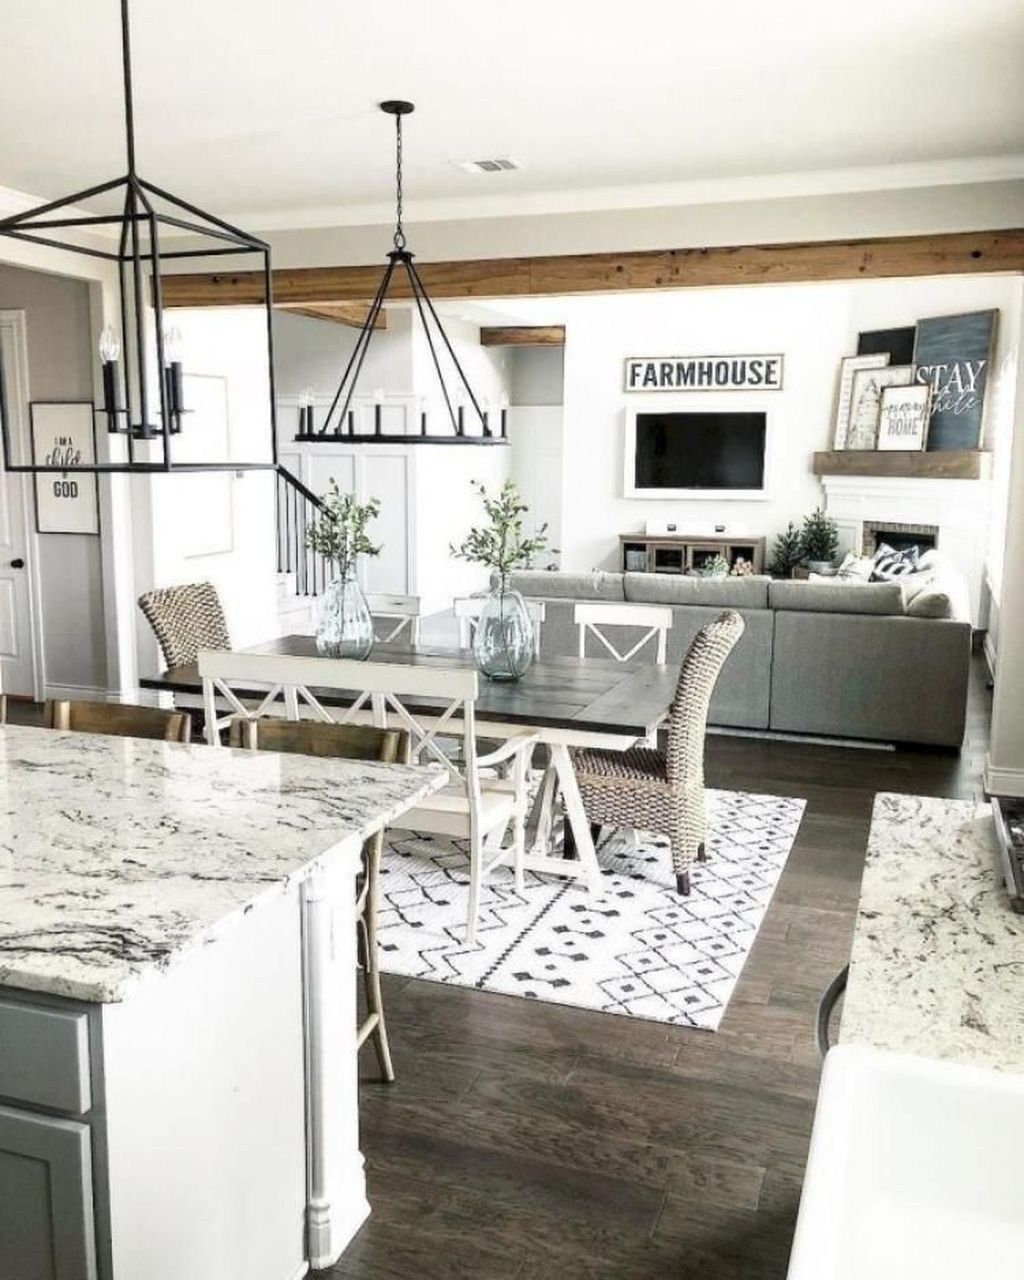 32 Stylish Dining Room Ideas To Impress Your Dinner Guests: 50 Stunning Farmhouse Dining Room Decoration Ideas